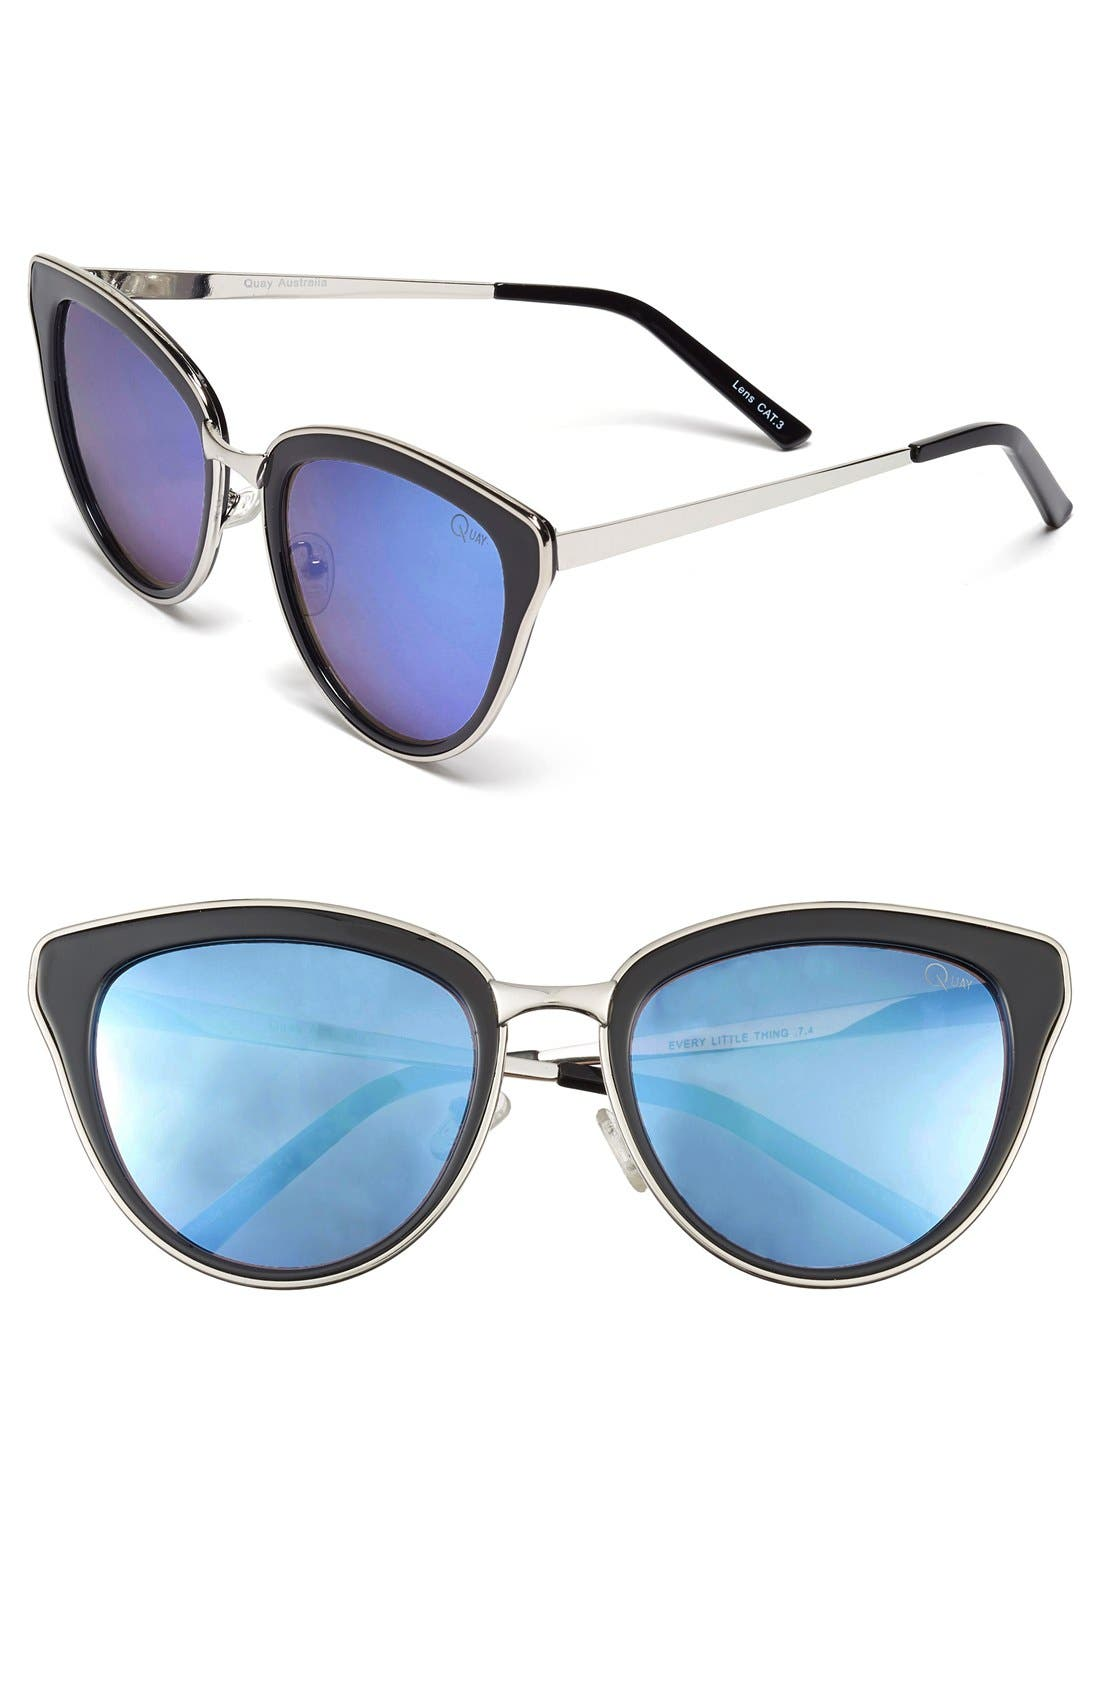 QUAY AUSTRALIA 'Every Little Thing' 54mm Cat Eye Sunglasses, Main, color, 002